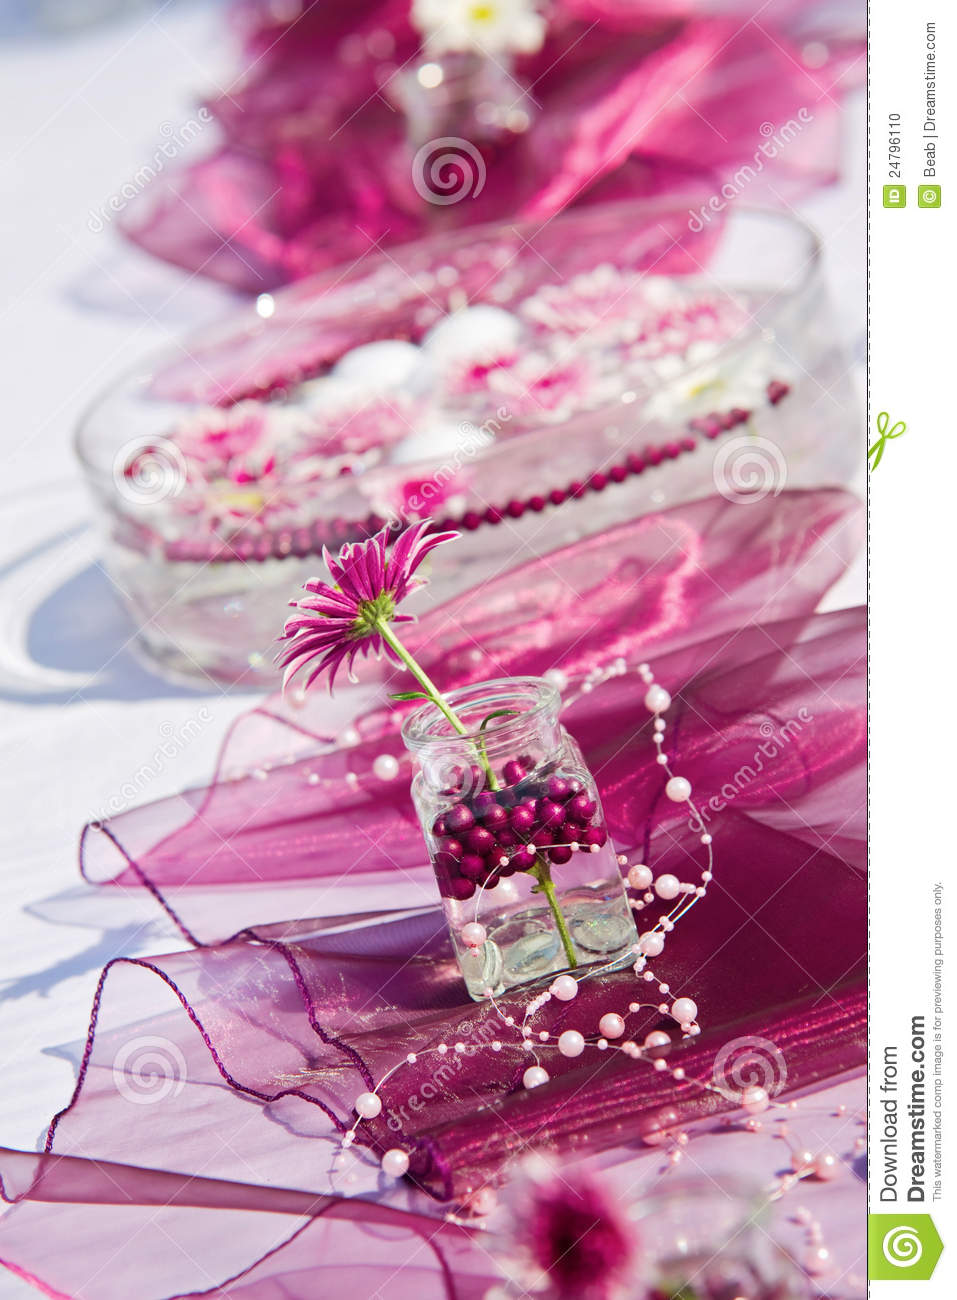 Table decoration for party - Table Decoration For A Summer Garden Party